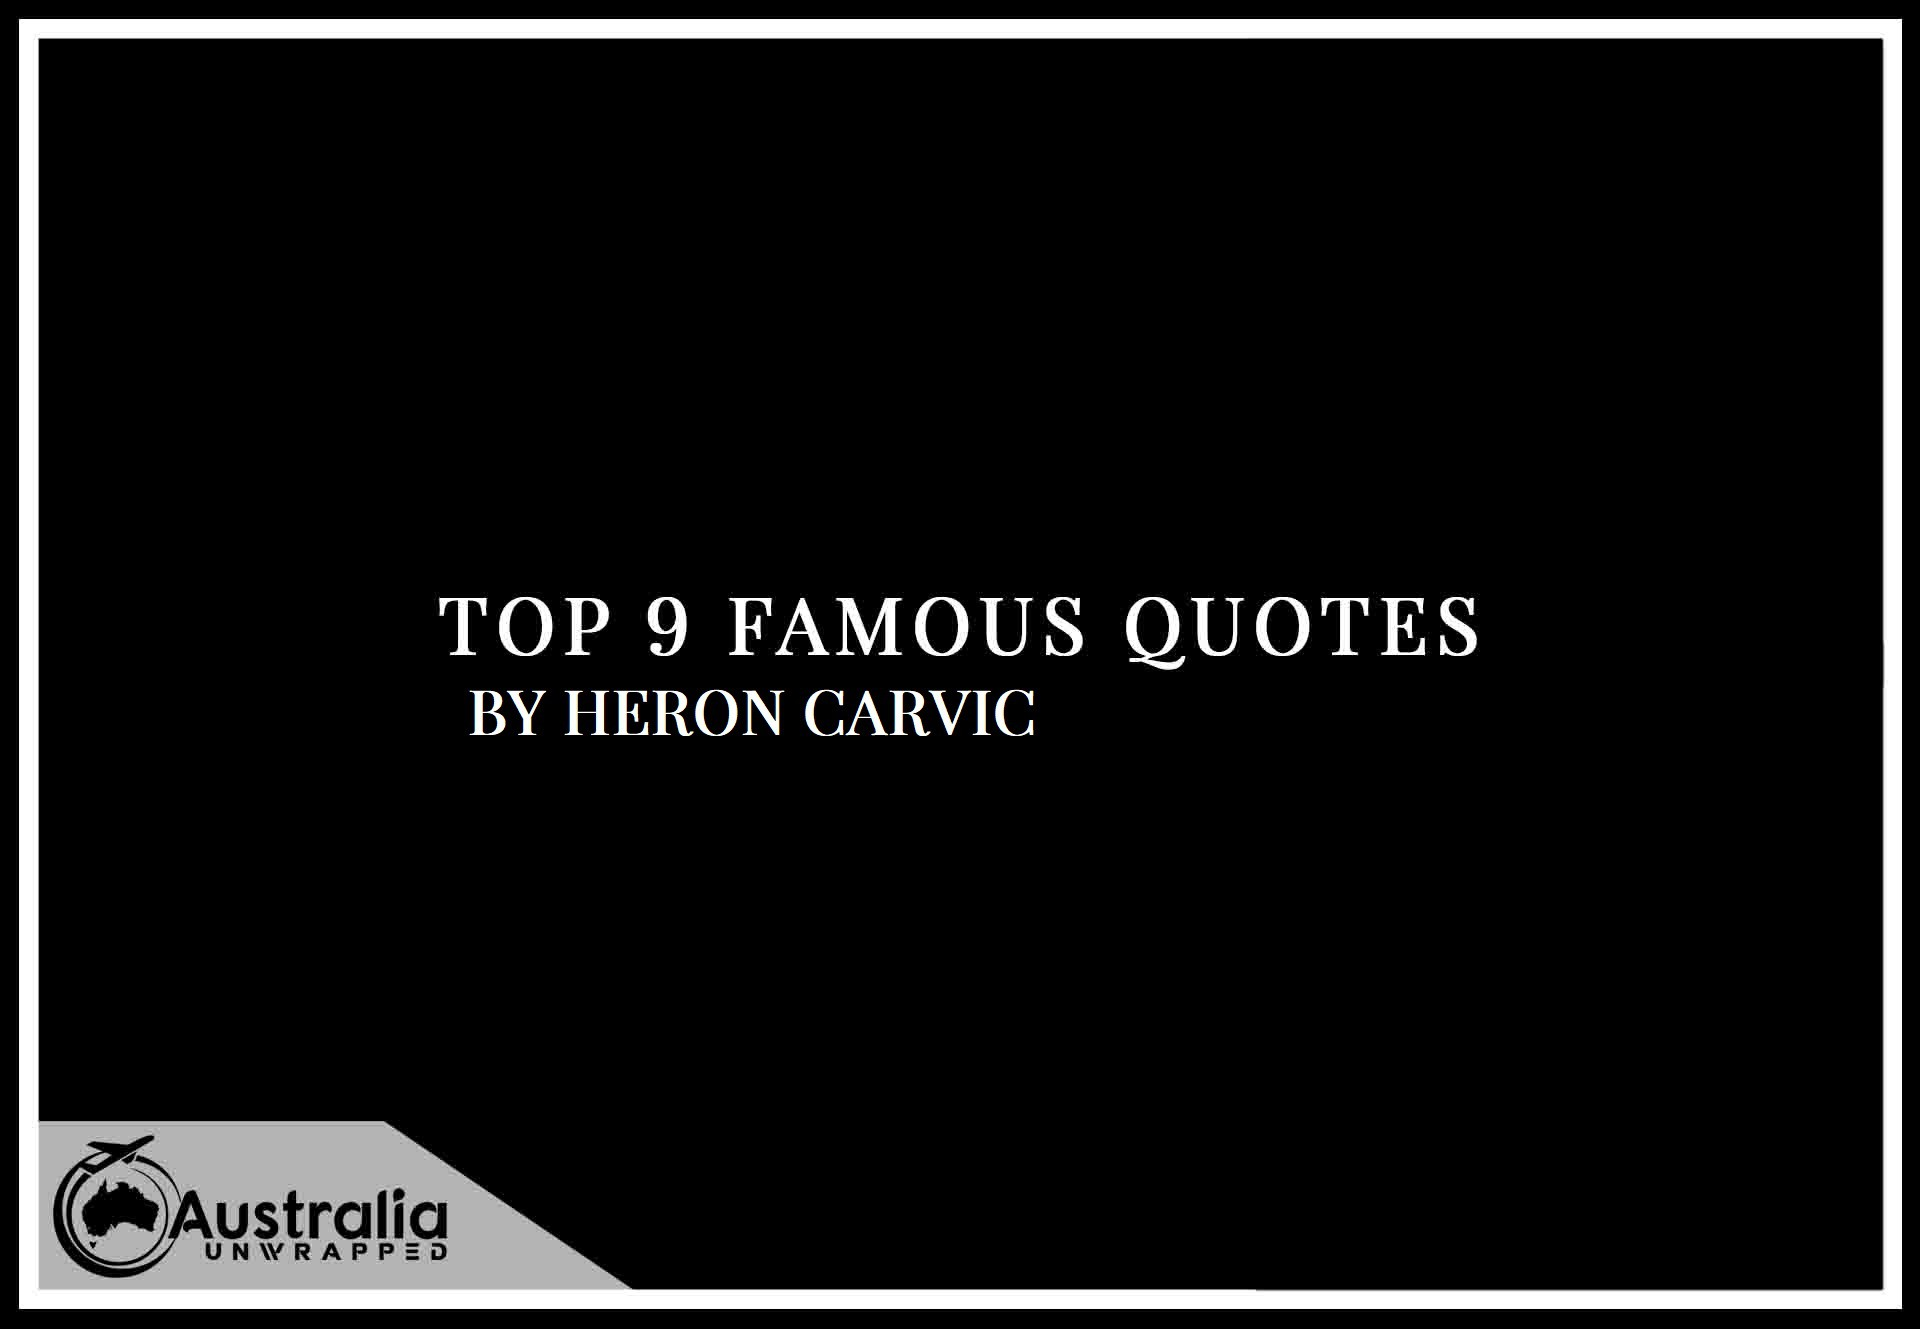 Top 9 Famous Quotes by Author Heron Carvic